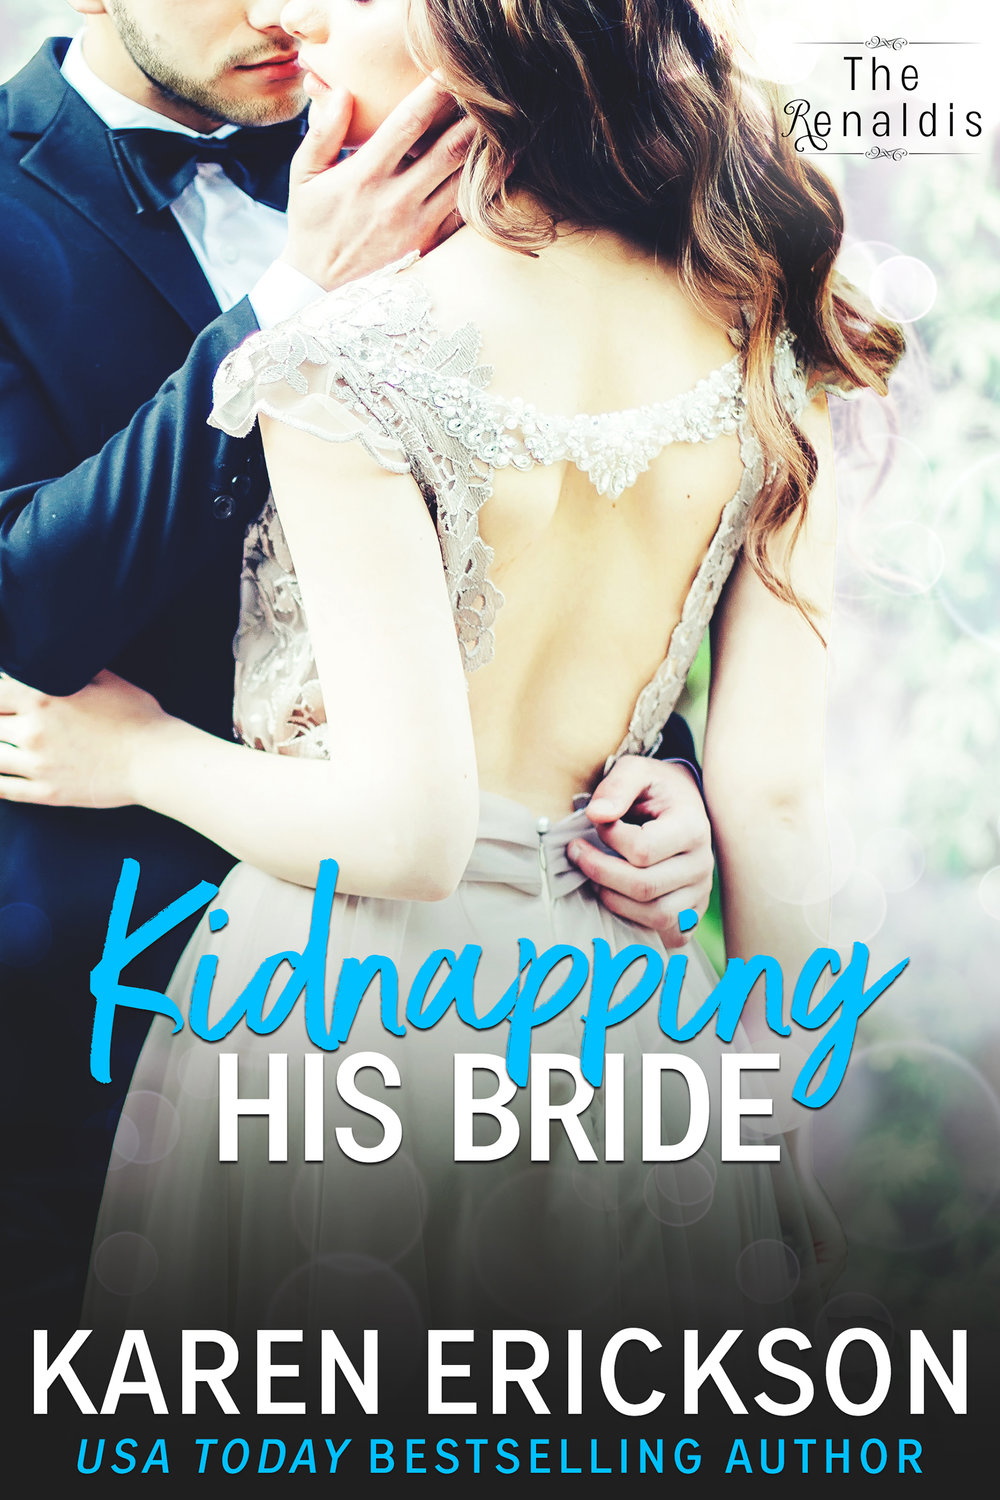 Kidnapping His Bride - The Renaldis, Book 2Amazon • B&N • iBooks • Kobo • GooglePlayCatch her if you can…Rafael Renaldi has always been in love with the woman his family arranged a marriage with. His memory of their single, searing kiss has sustained him until the time is right.Catalina Campioni does not think the time is right. A wedding and babies sounds boring—she craves adventure.When Rafe discovers what his intended truly wants, he does something crazy.He kidnaps her.If she wants adventure, he'll show it to her—along with every ounce of his legendary, womanizing charm.But he's not the only one playing a dangerous game.And even as Rafe and Cat fall in love, they may end up paying the ultimate price.Amazon • B&N • iBooks • Kobo • GooglePlay